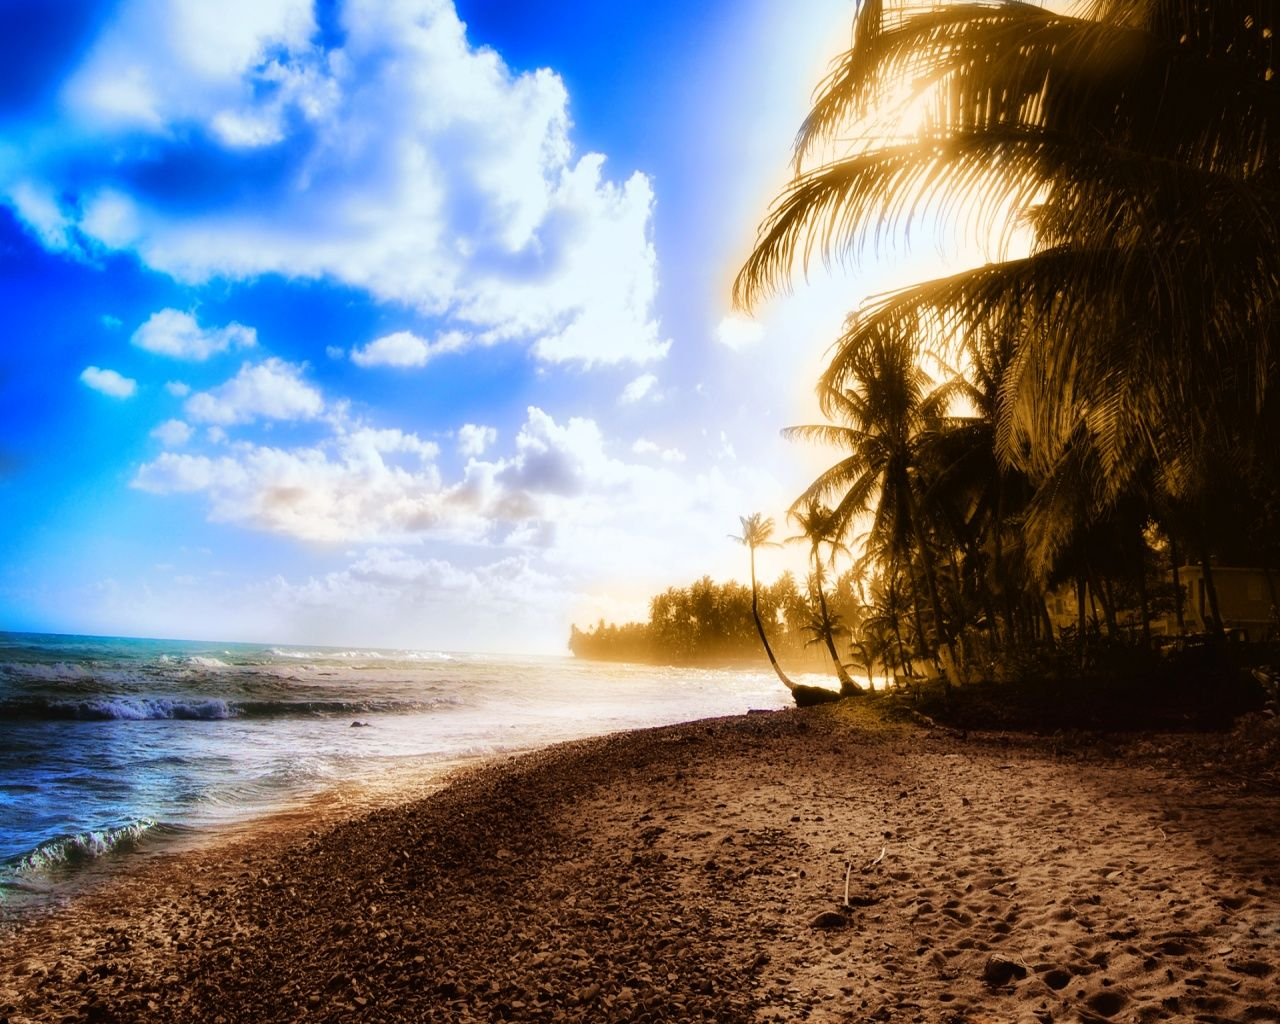 Puerto Rico Images Wallpaper Google Search With Images Beach